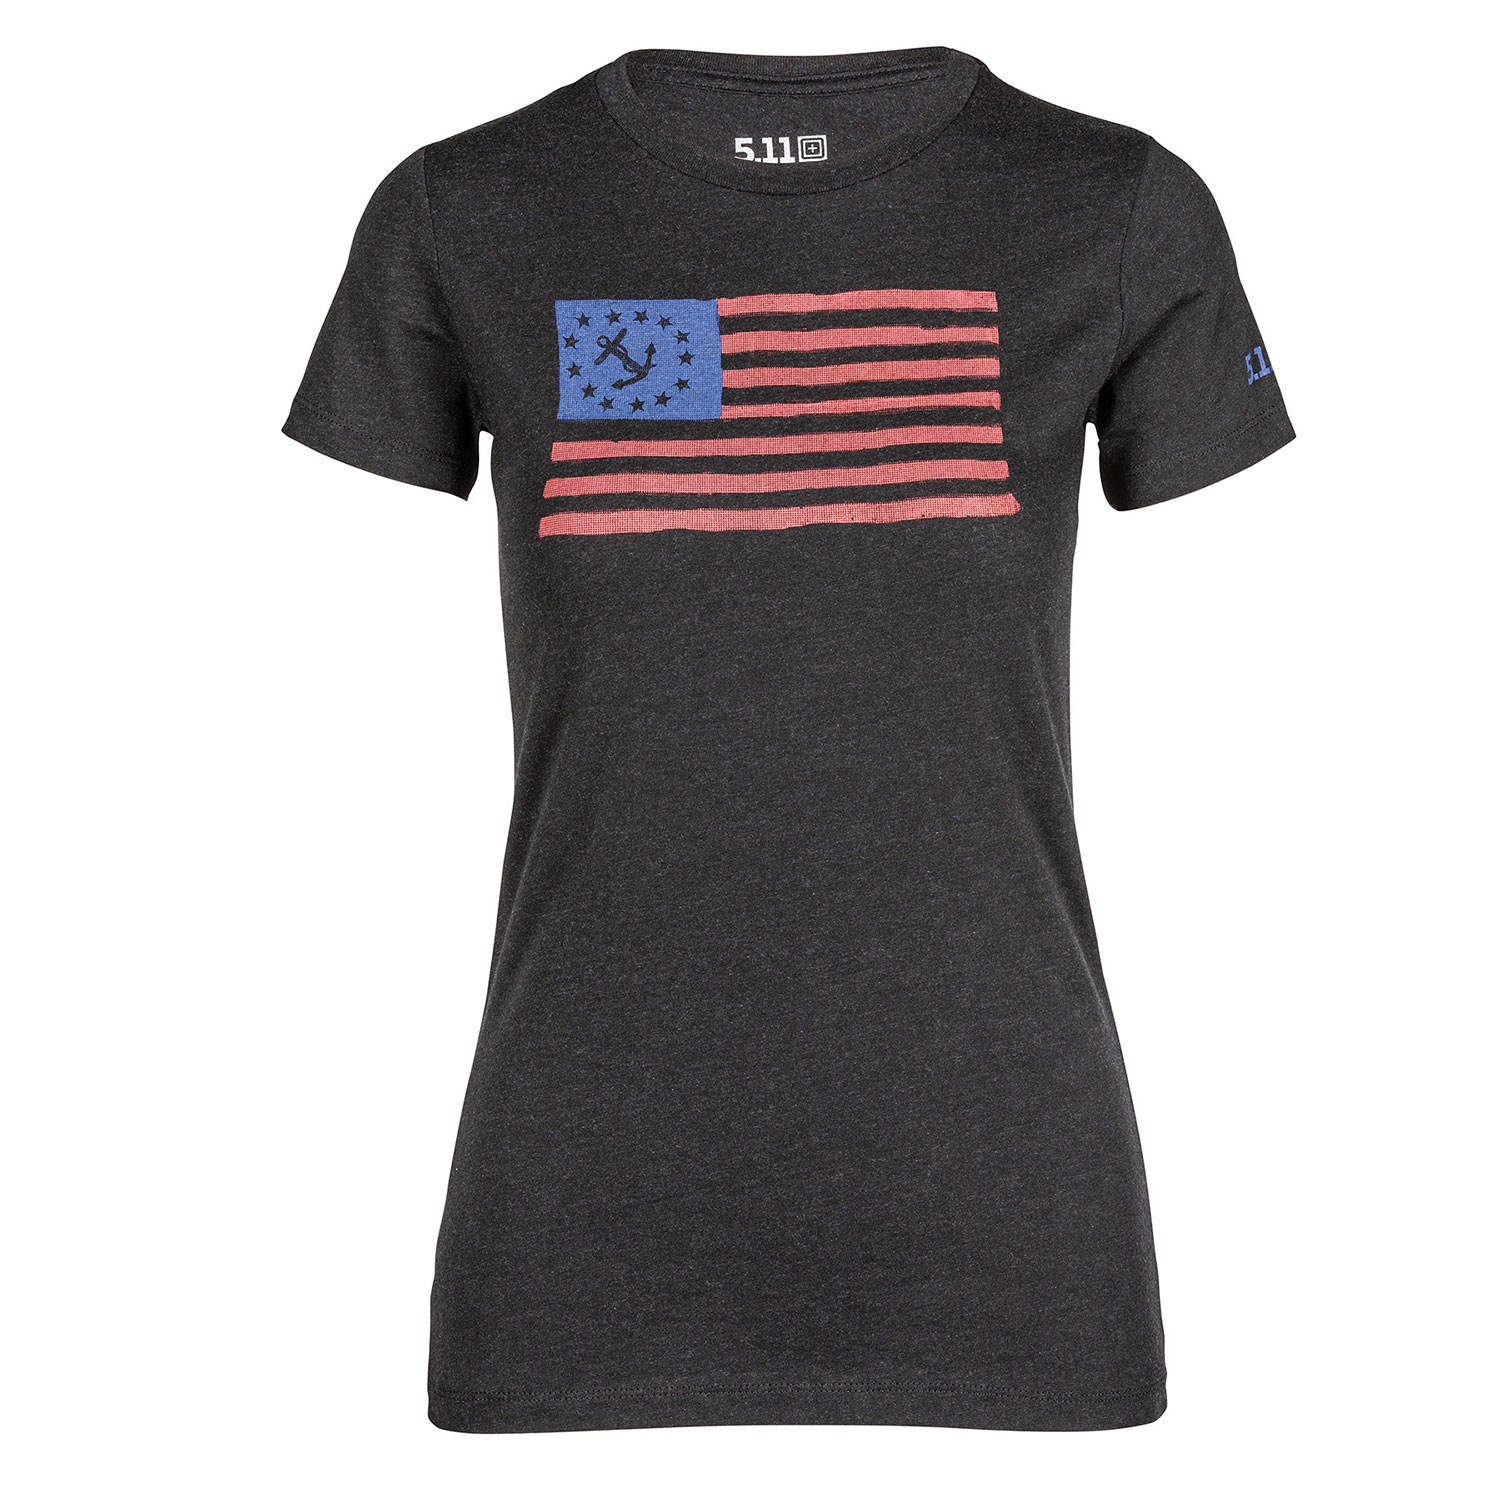 5.11 Women's Vintage Flag Short Sleeve T-Shirt